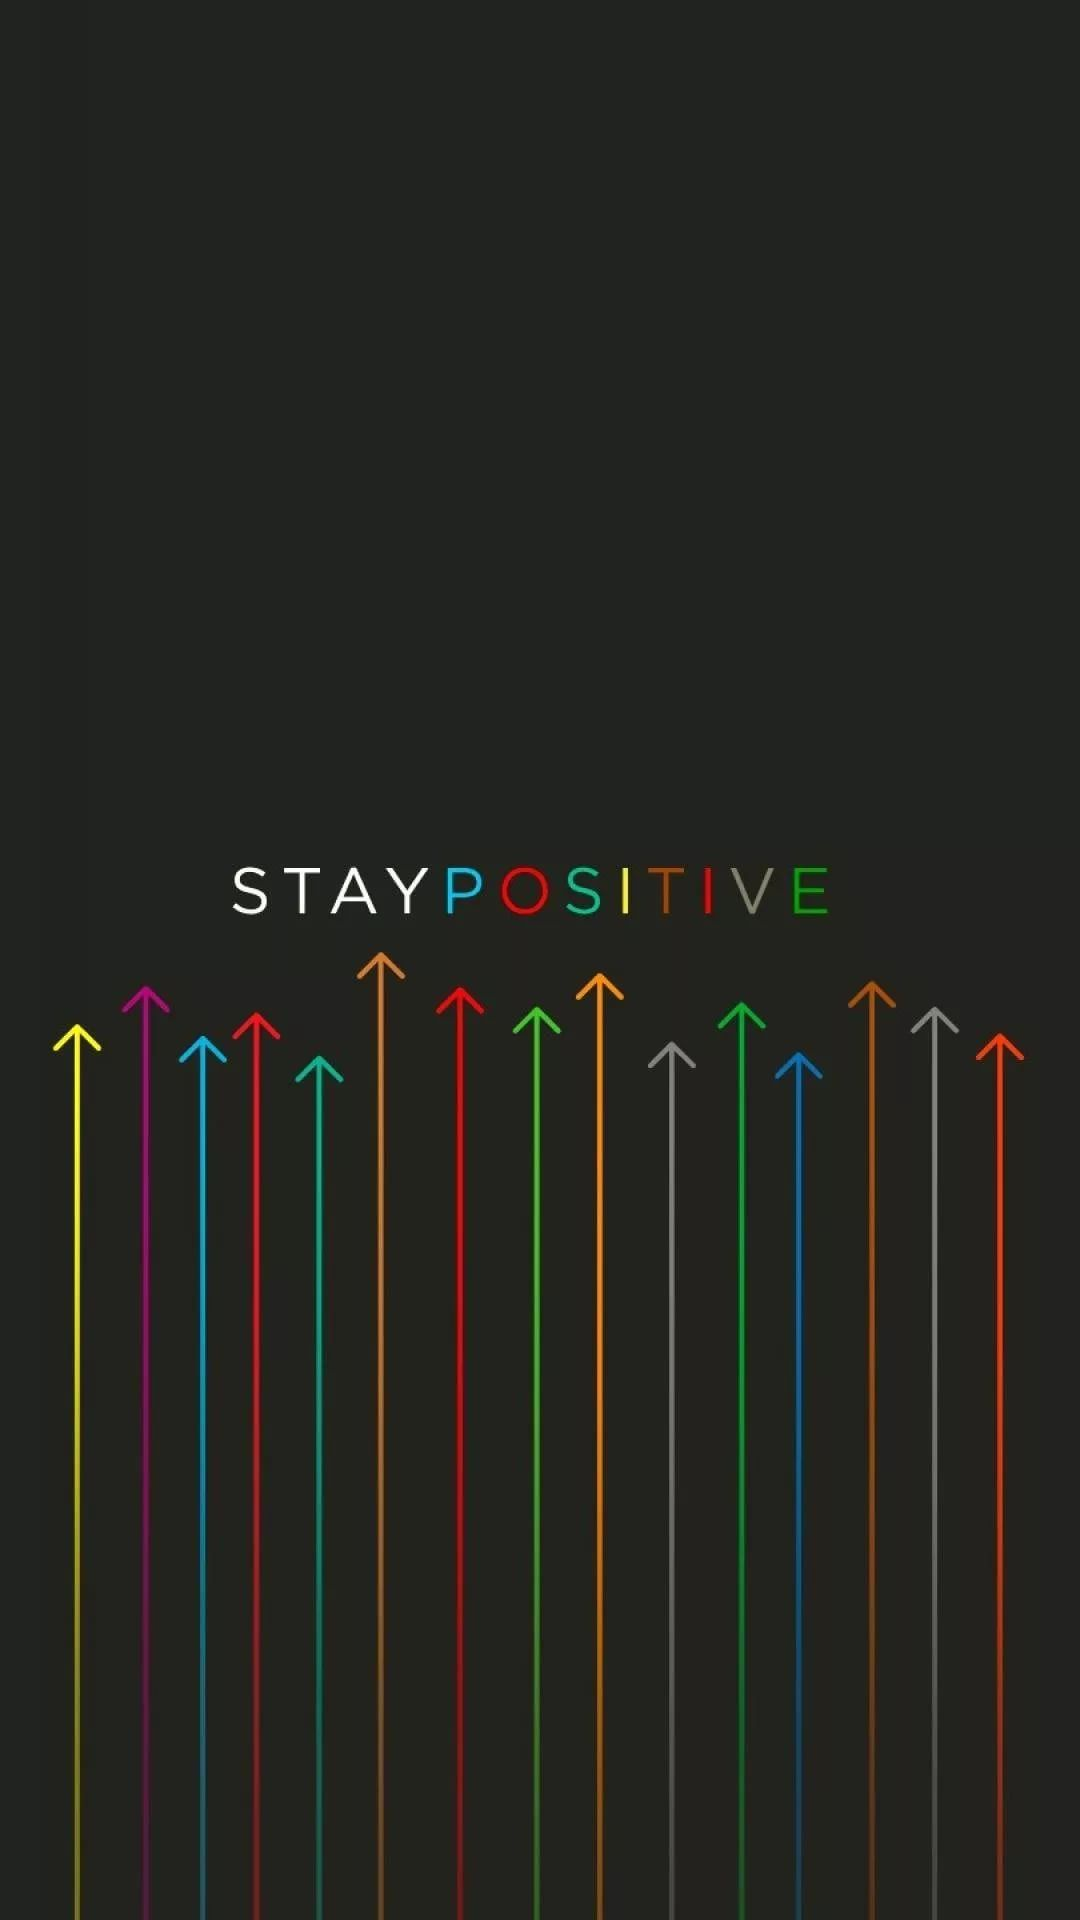 Positive Android p wallpaper